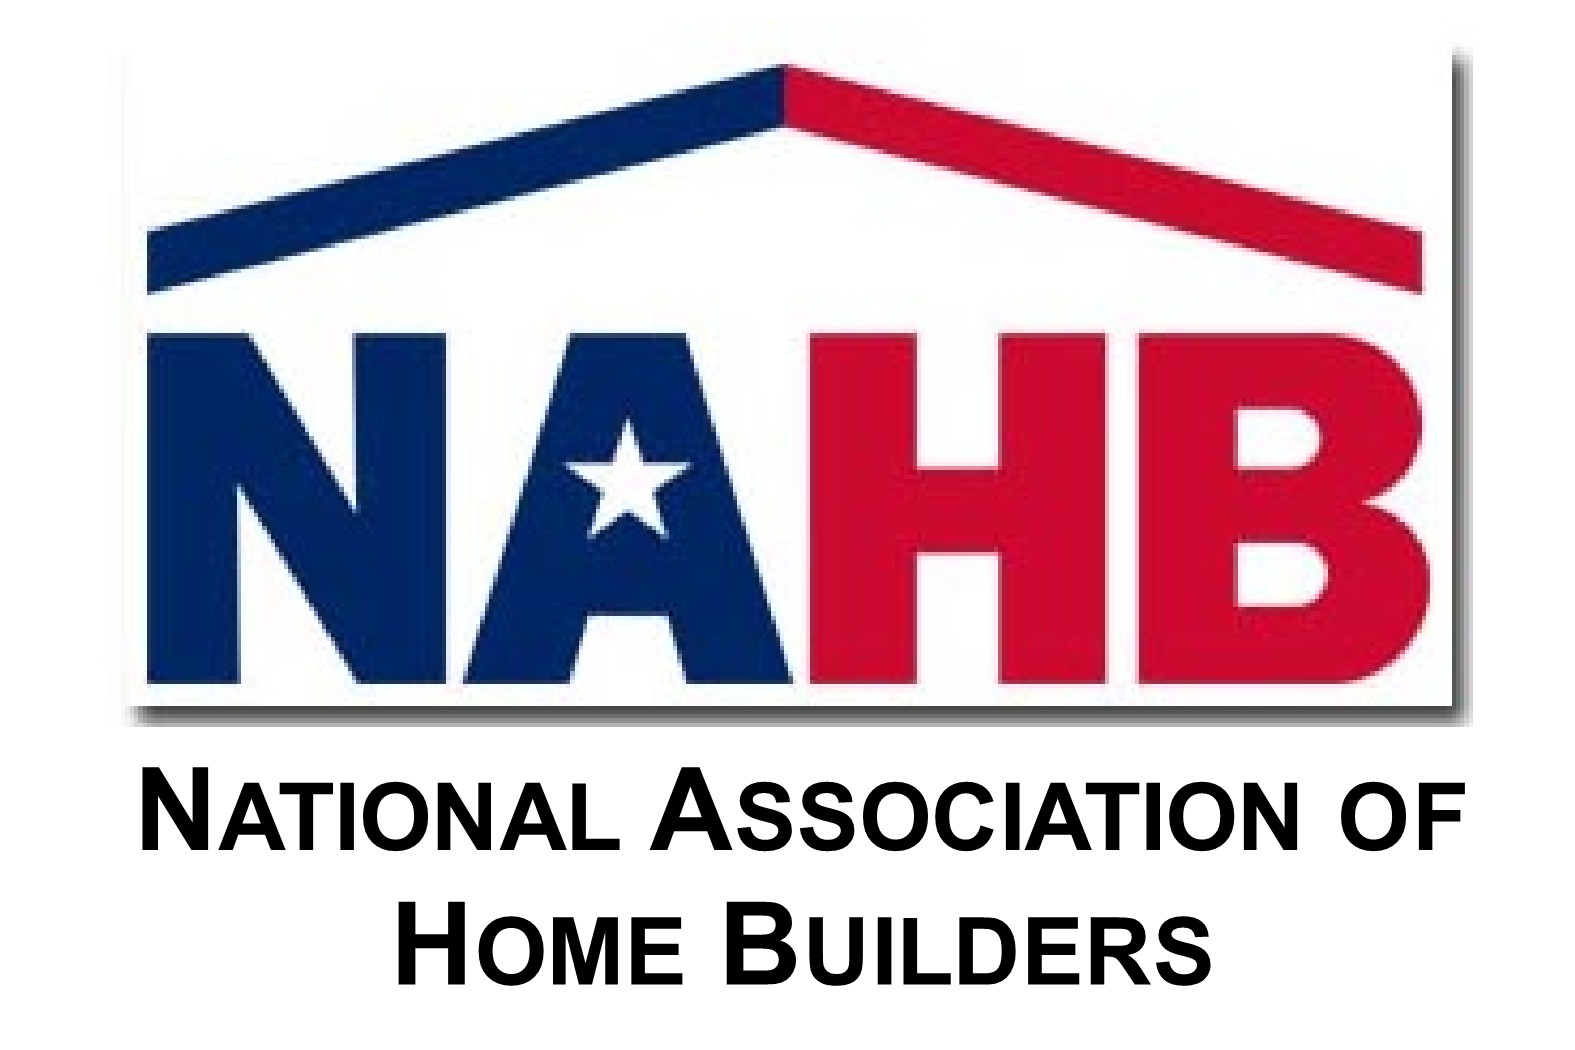 The national association